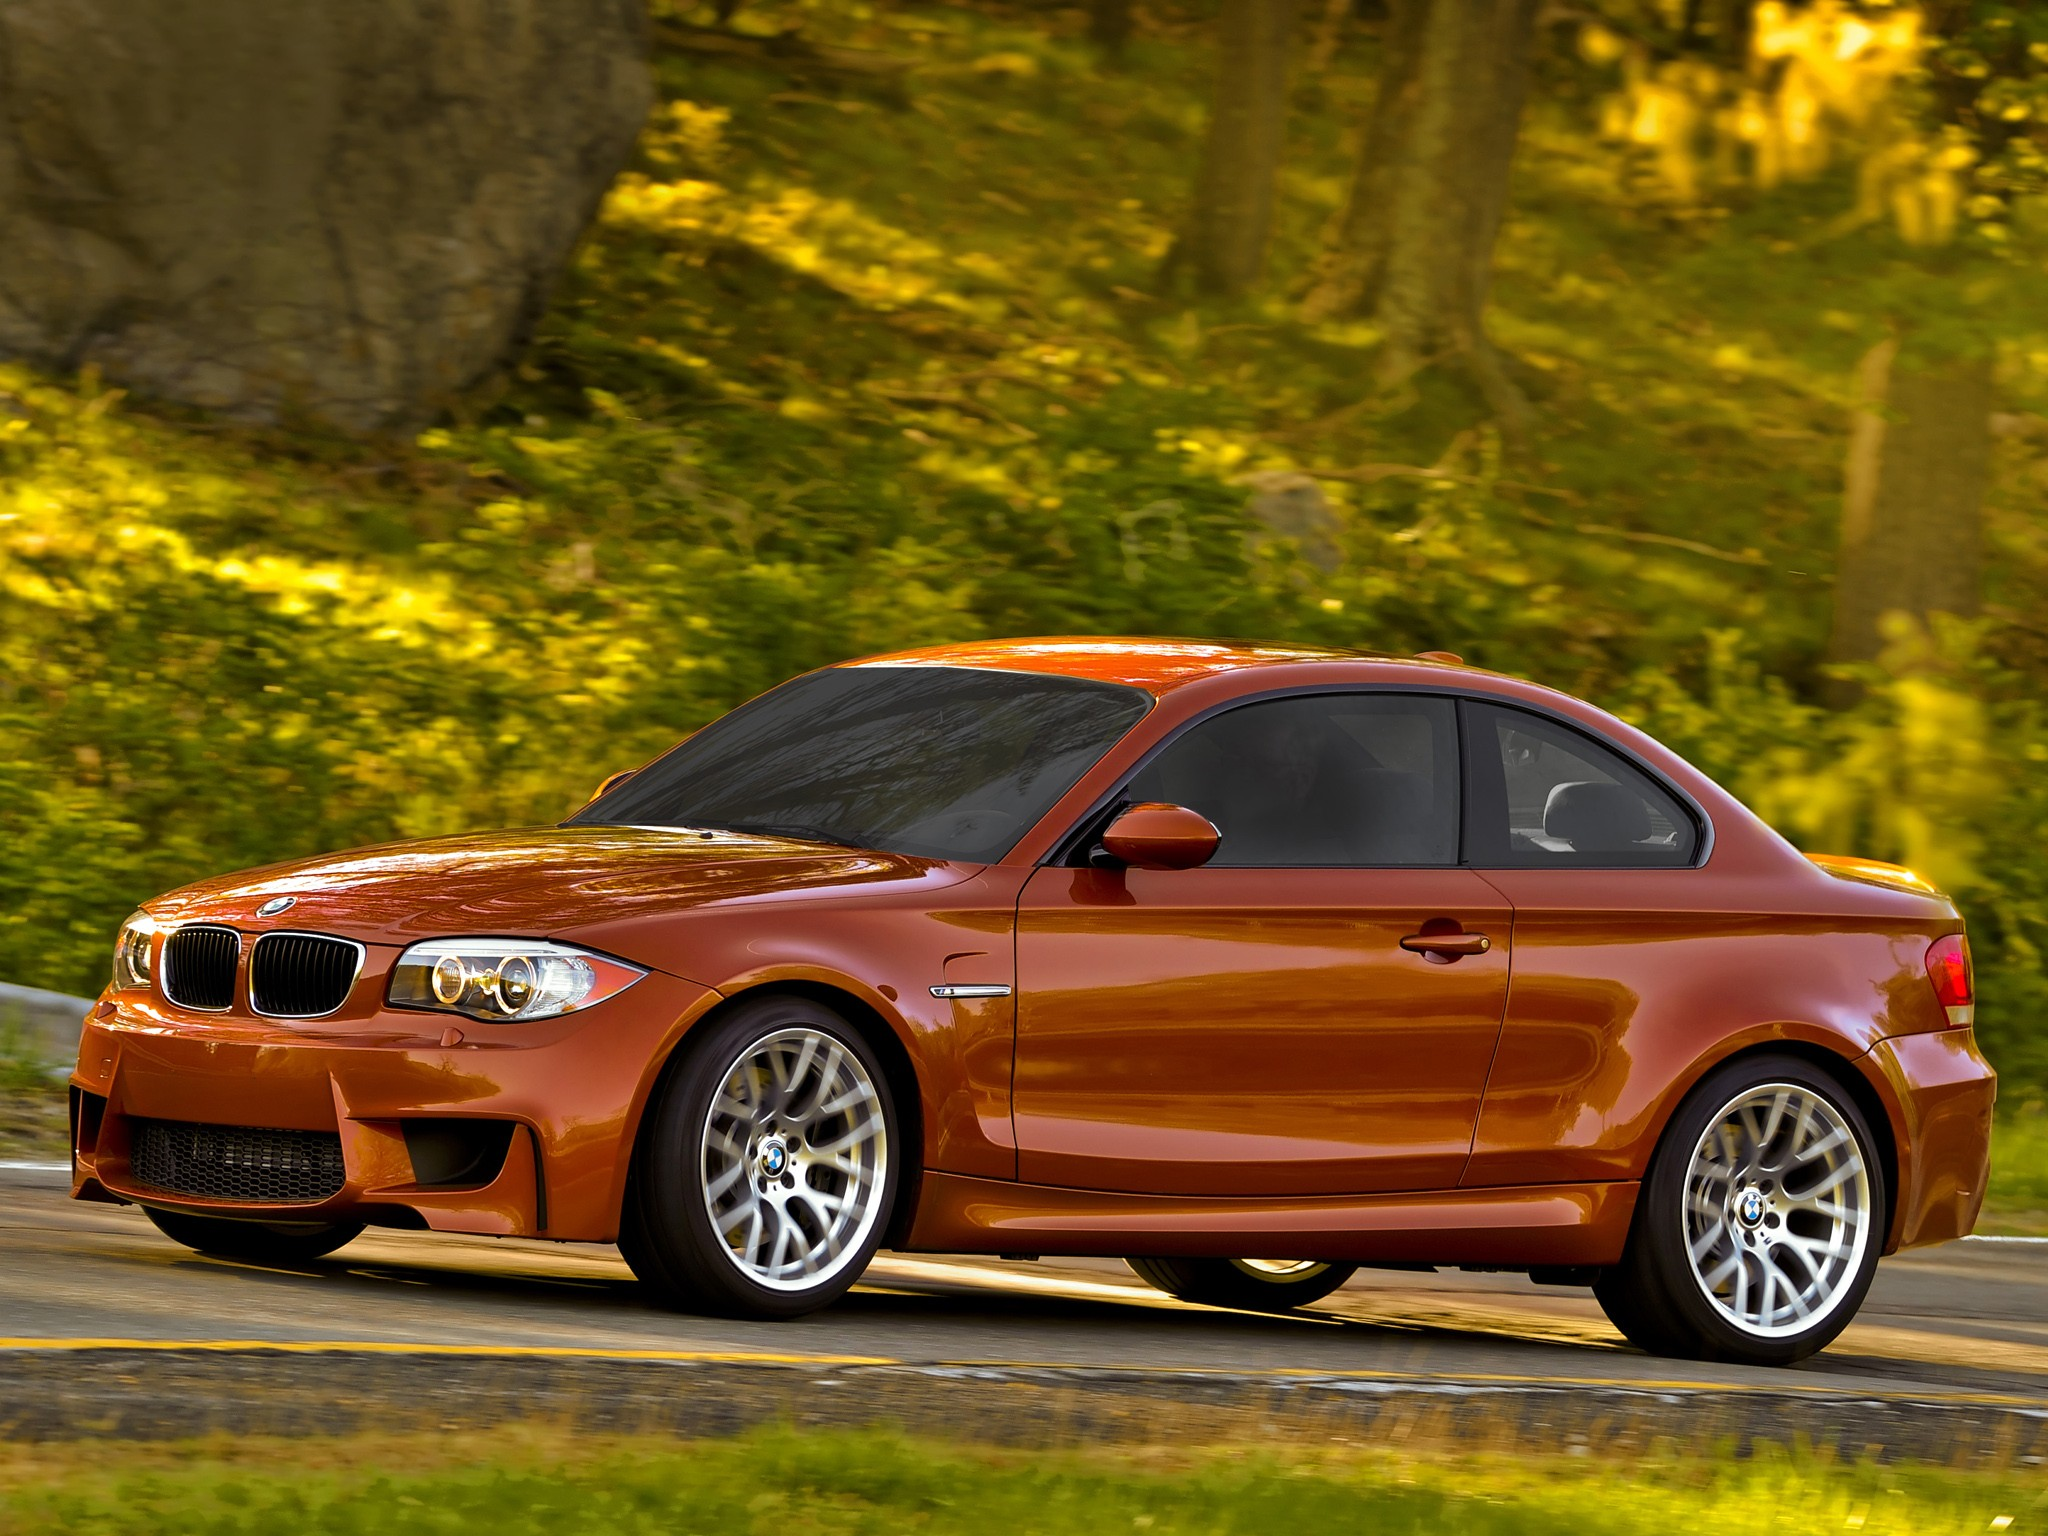 bmw 1 series m coupe e82 specs 2010 2011 2012. Black Bedroom Furniture Sets. Home Design Ideas